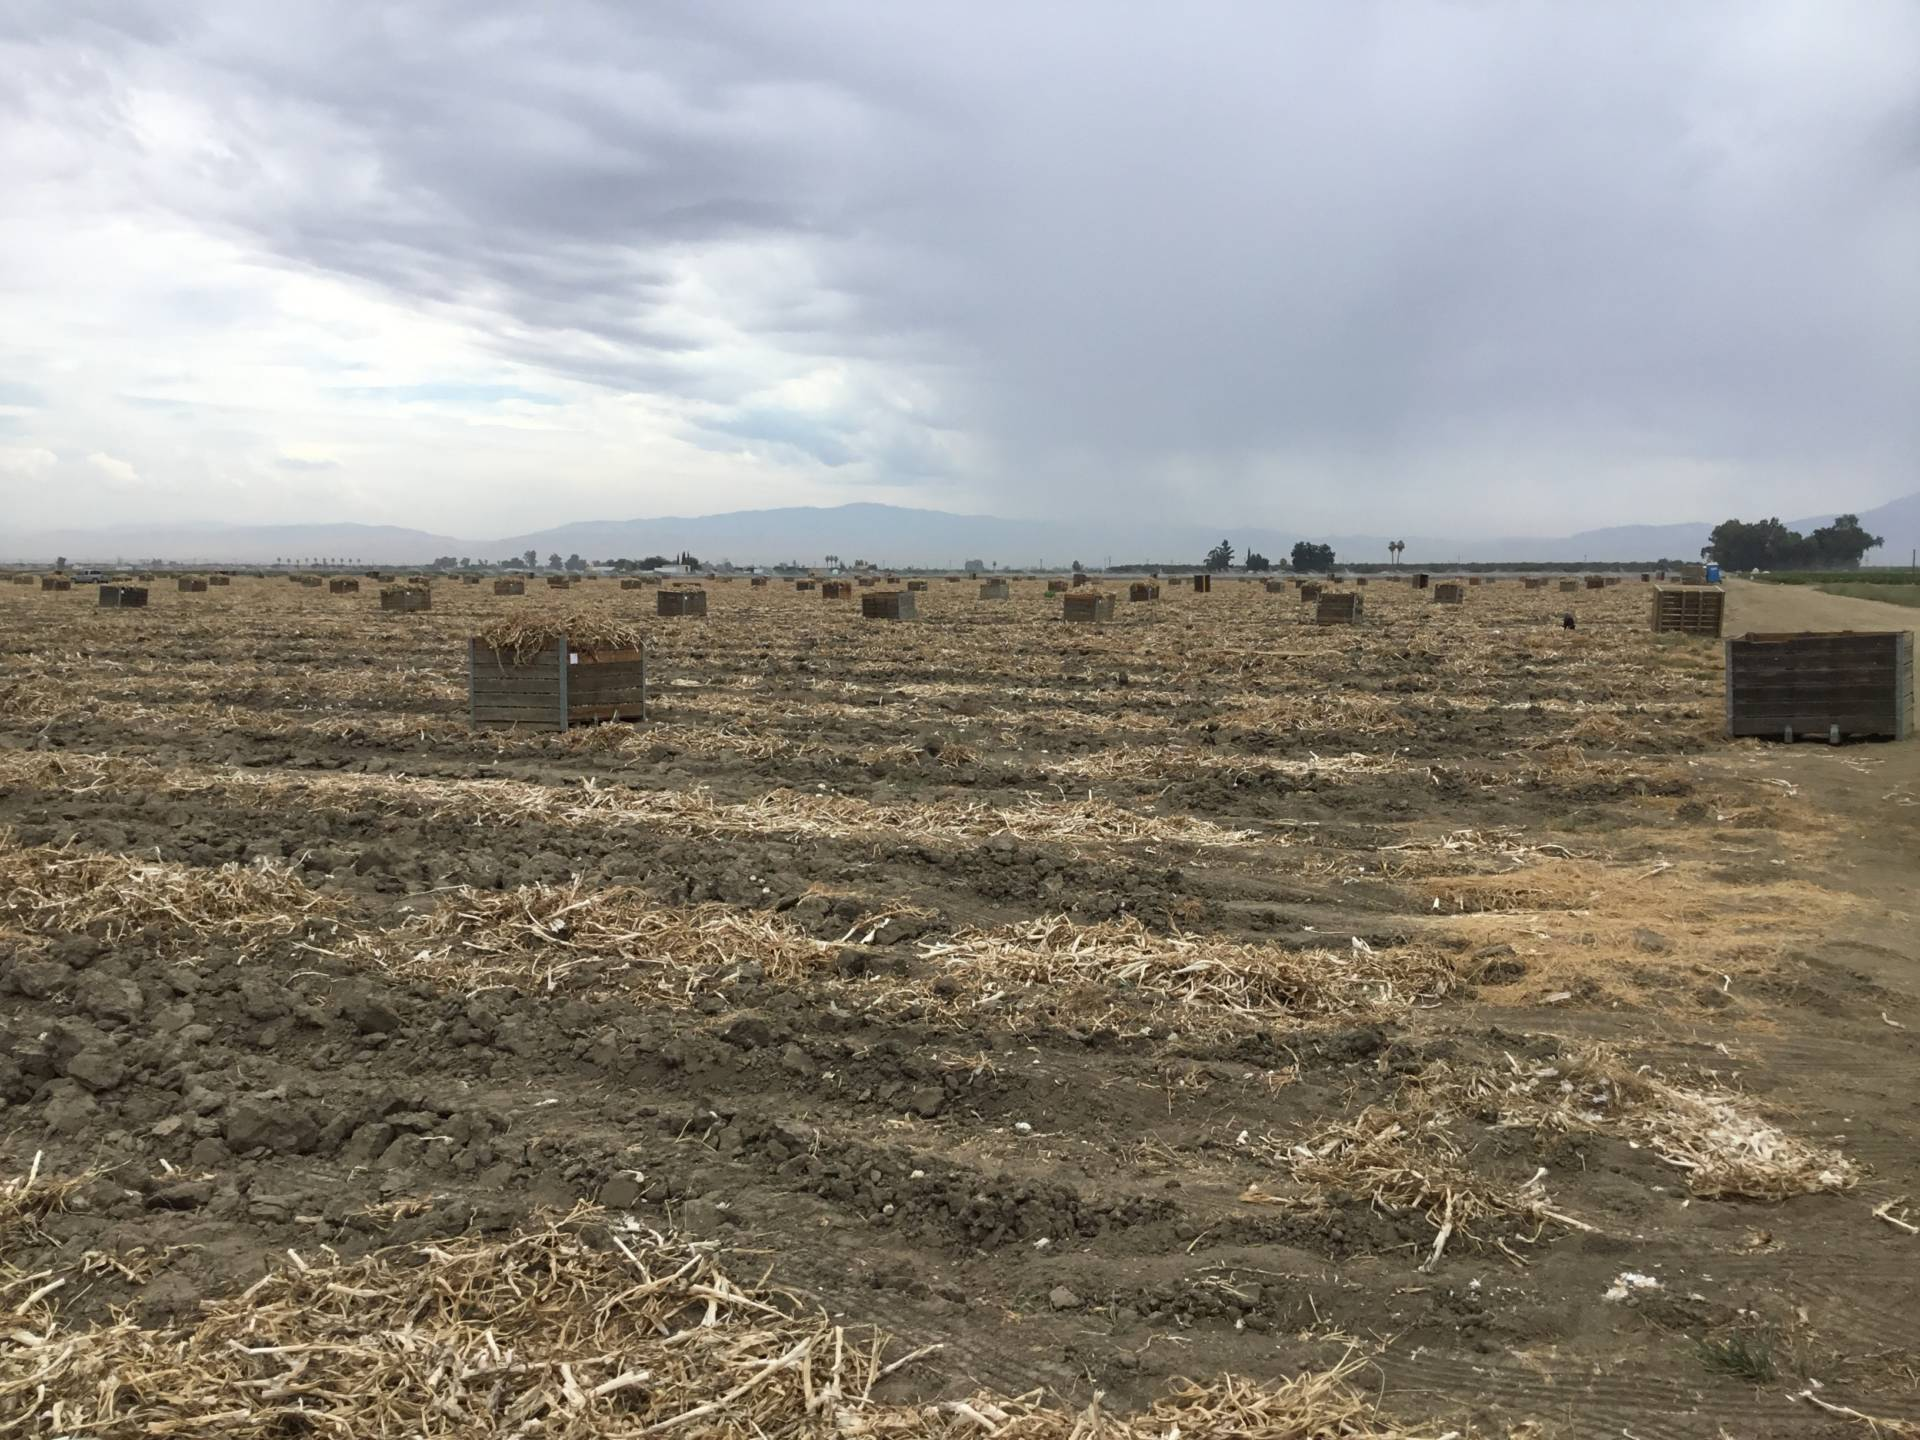 The garlic field where 92 farmworkers were sickened after being exposed to pesticide drifting from a nearby site.